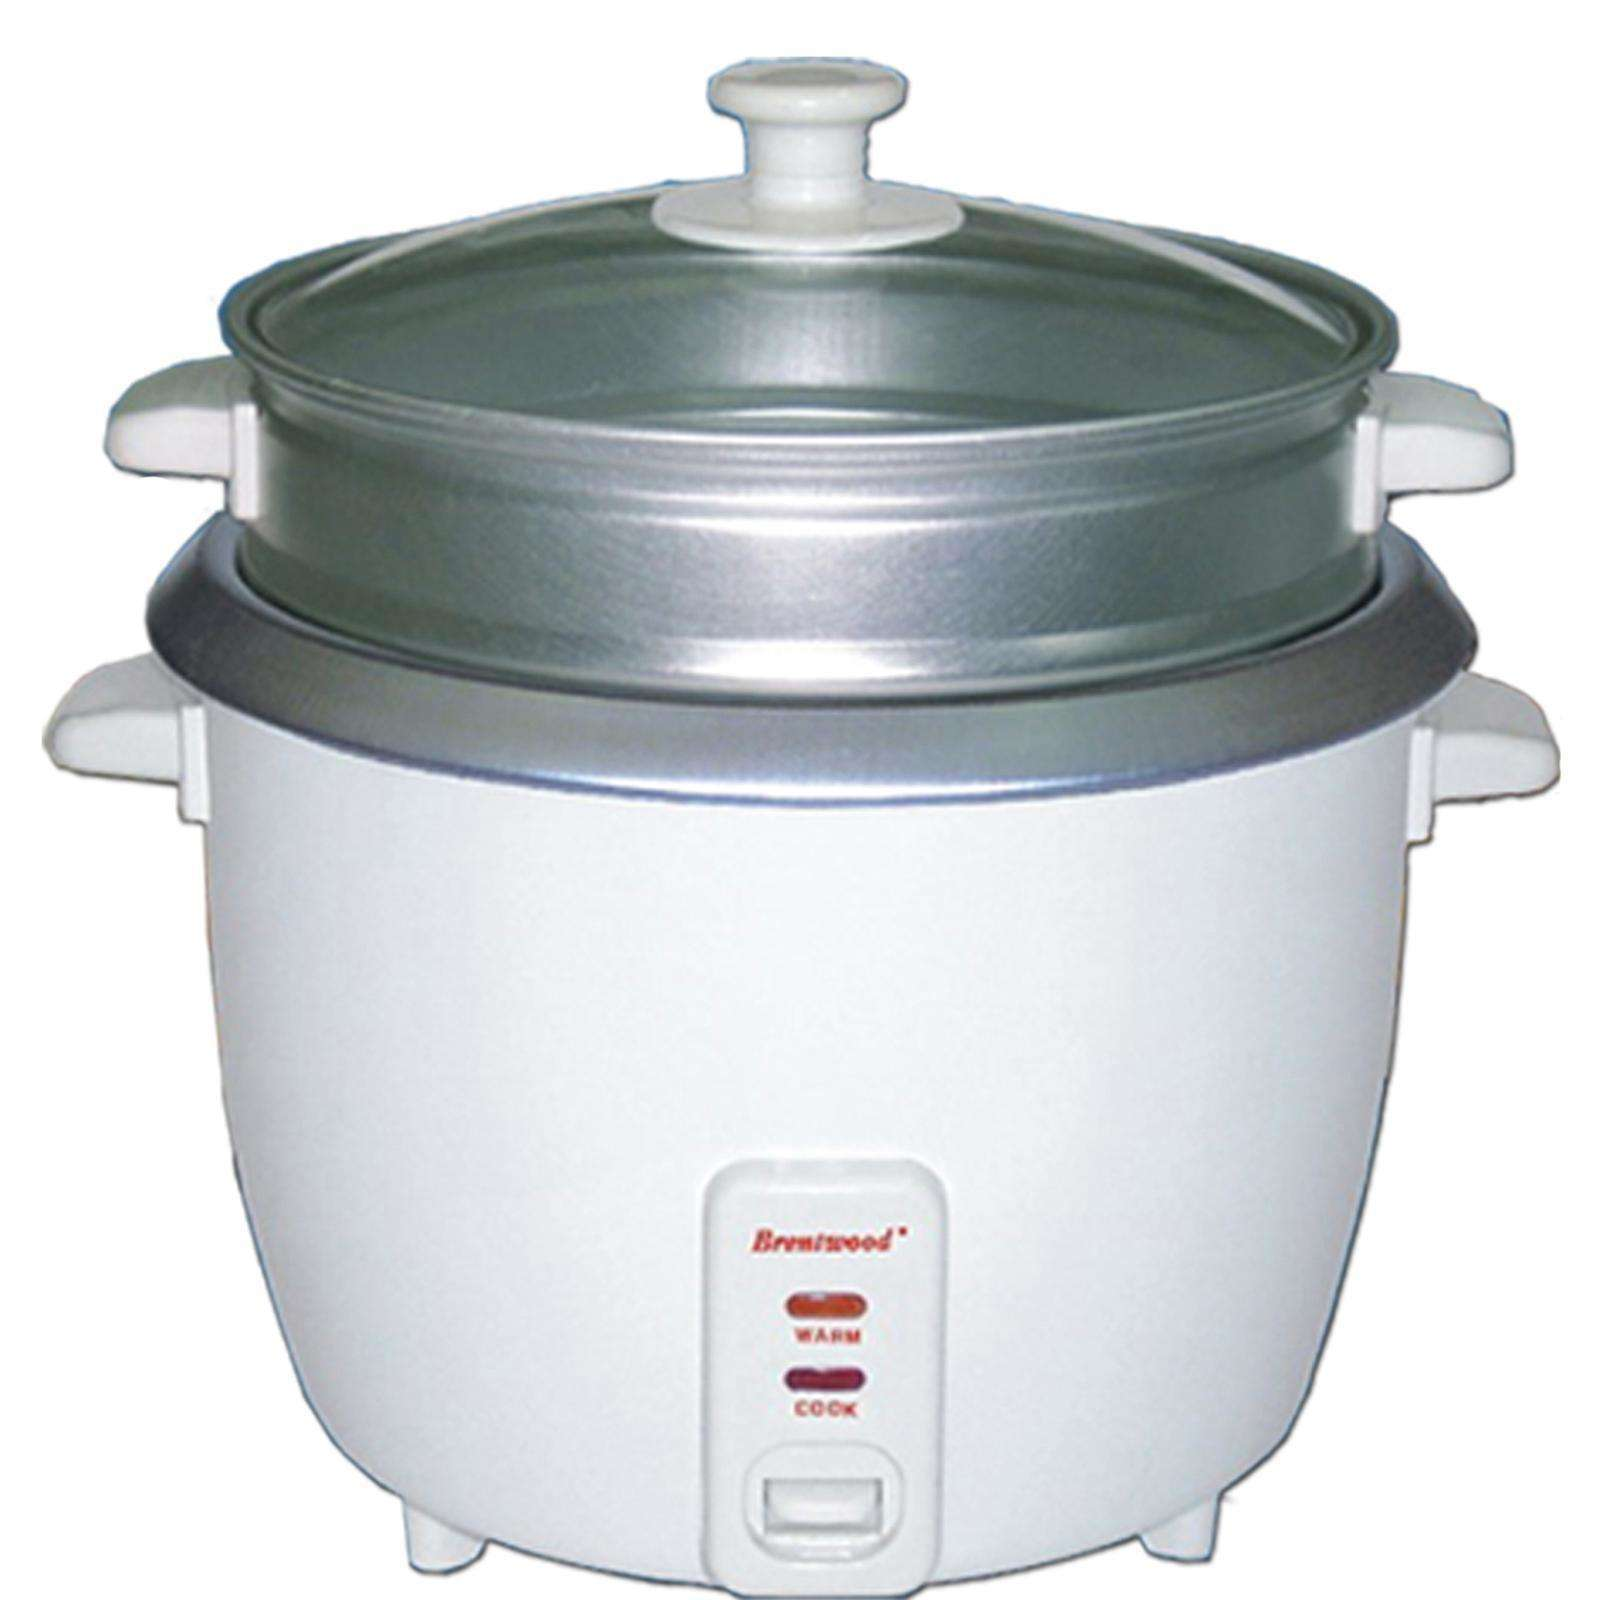 Brentwood 5 Cup Rice Cooker-Non-Stick with Steamer